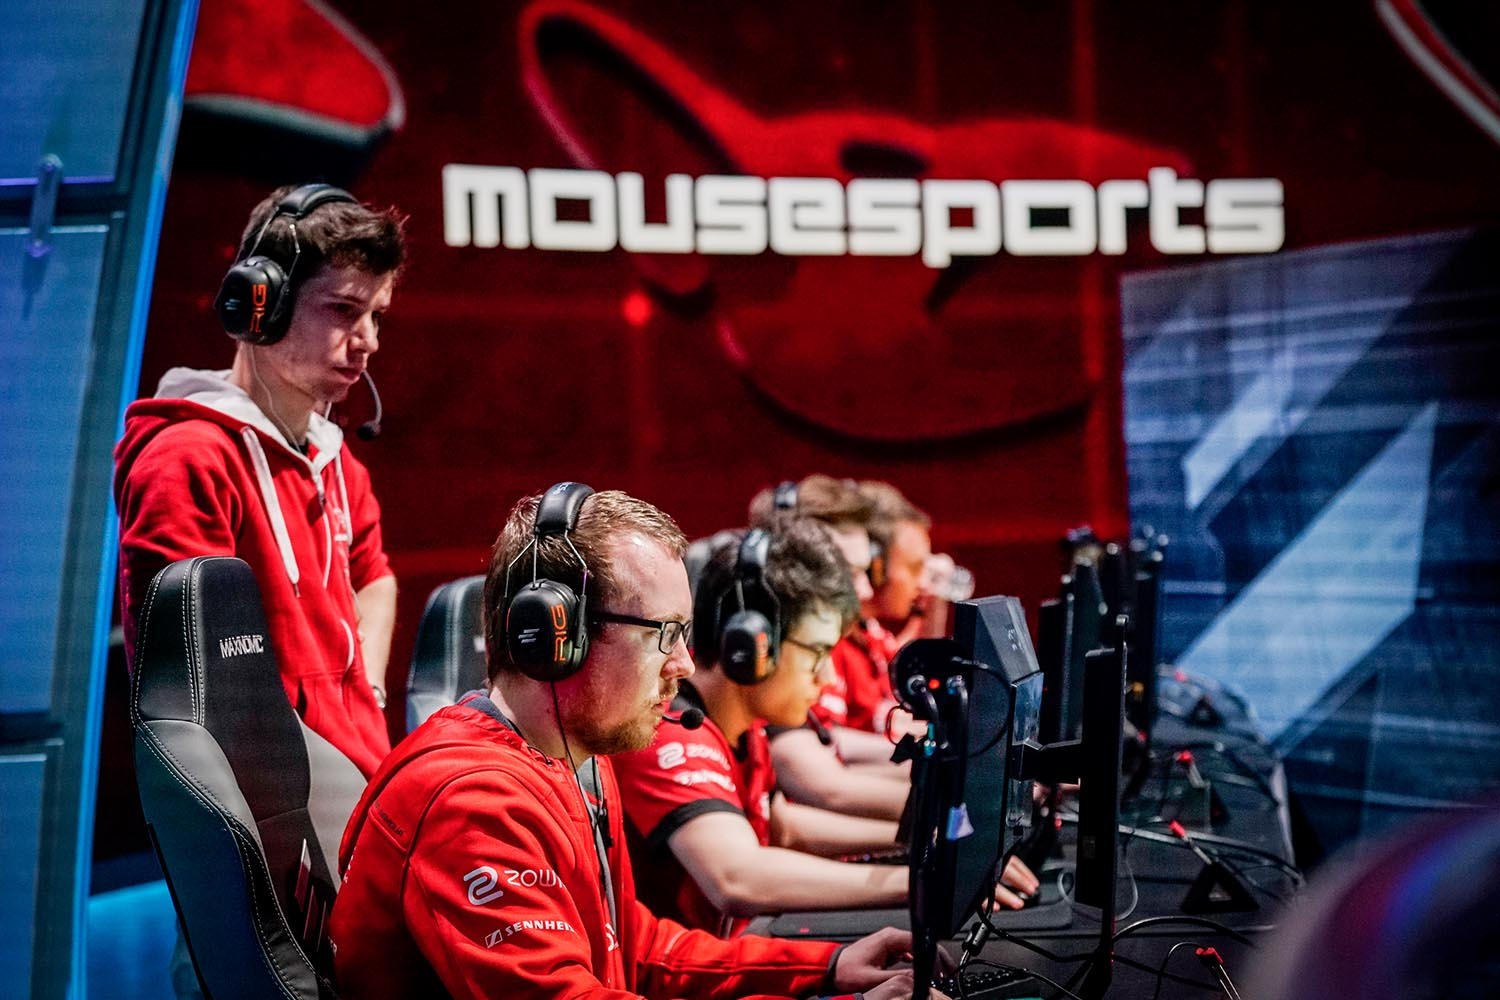 Can mousesports' current roster ever hoist a trophy together?